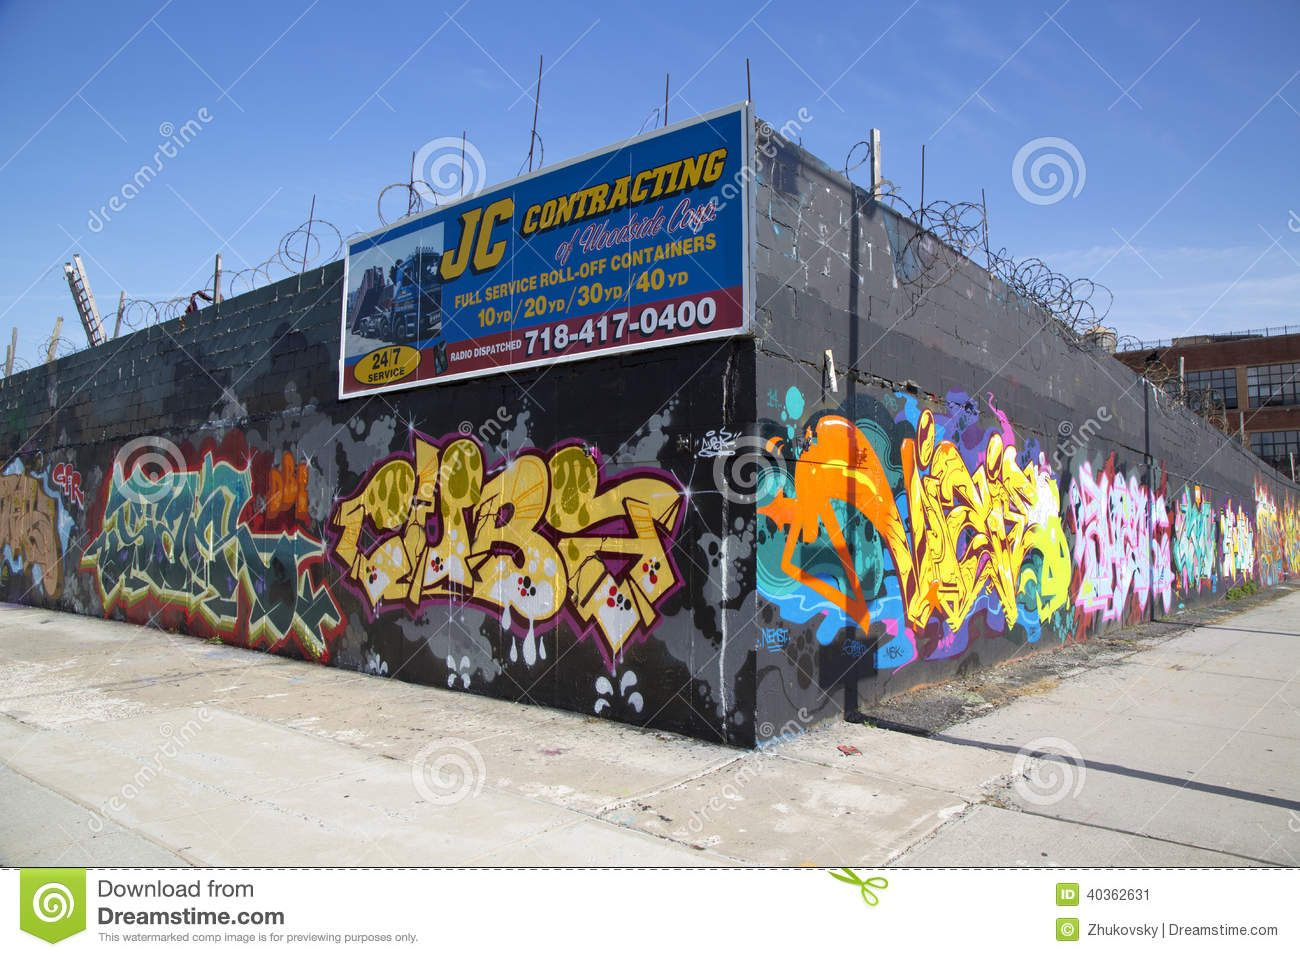 Graffiti wall in queens ny - Graffiti Wall At East Williamsburg Neighborhood In Brooklyn New York Download From Over 36